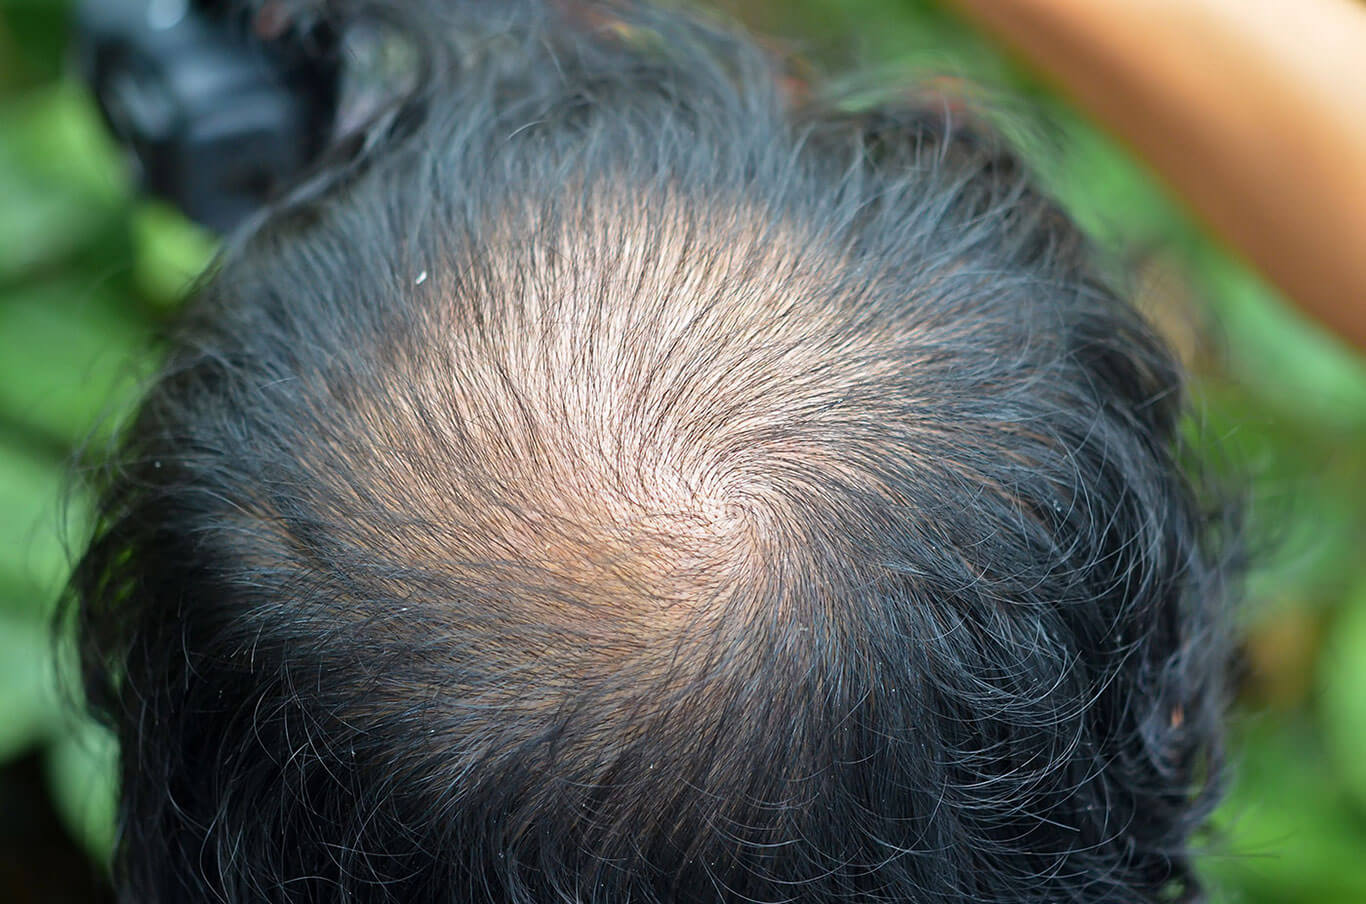 A close-up of the back of a man's head, showing hair loss at the crown